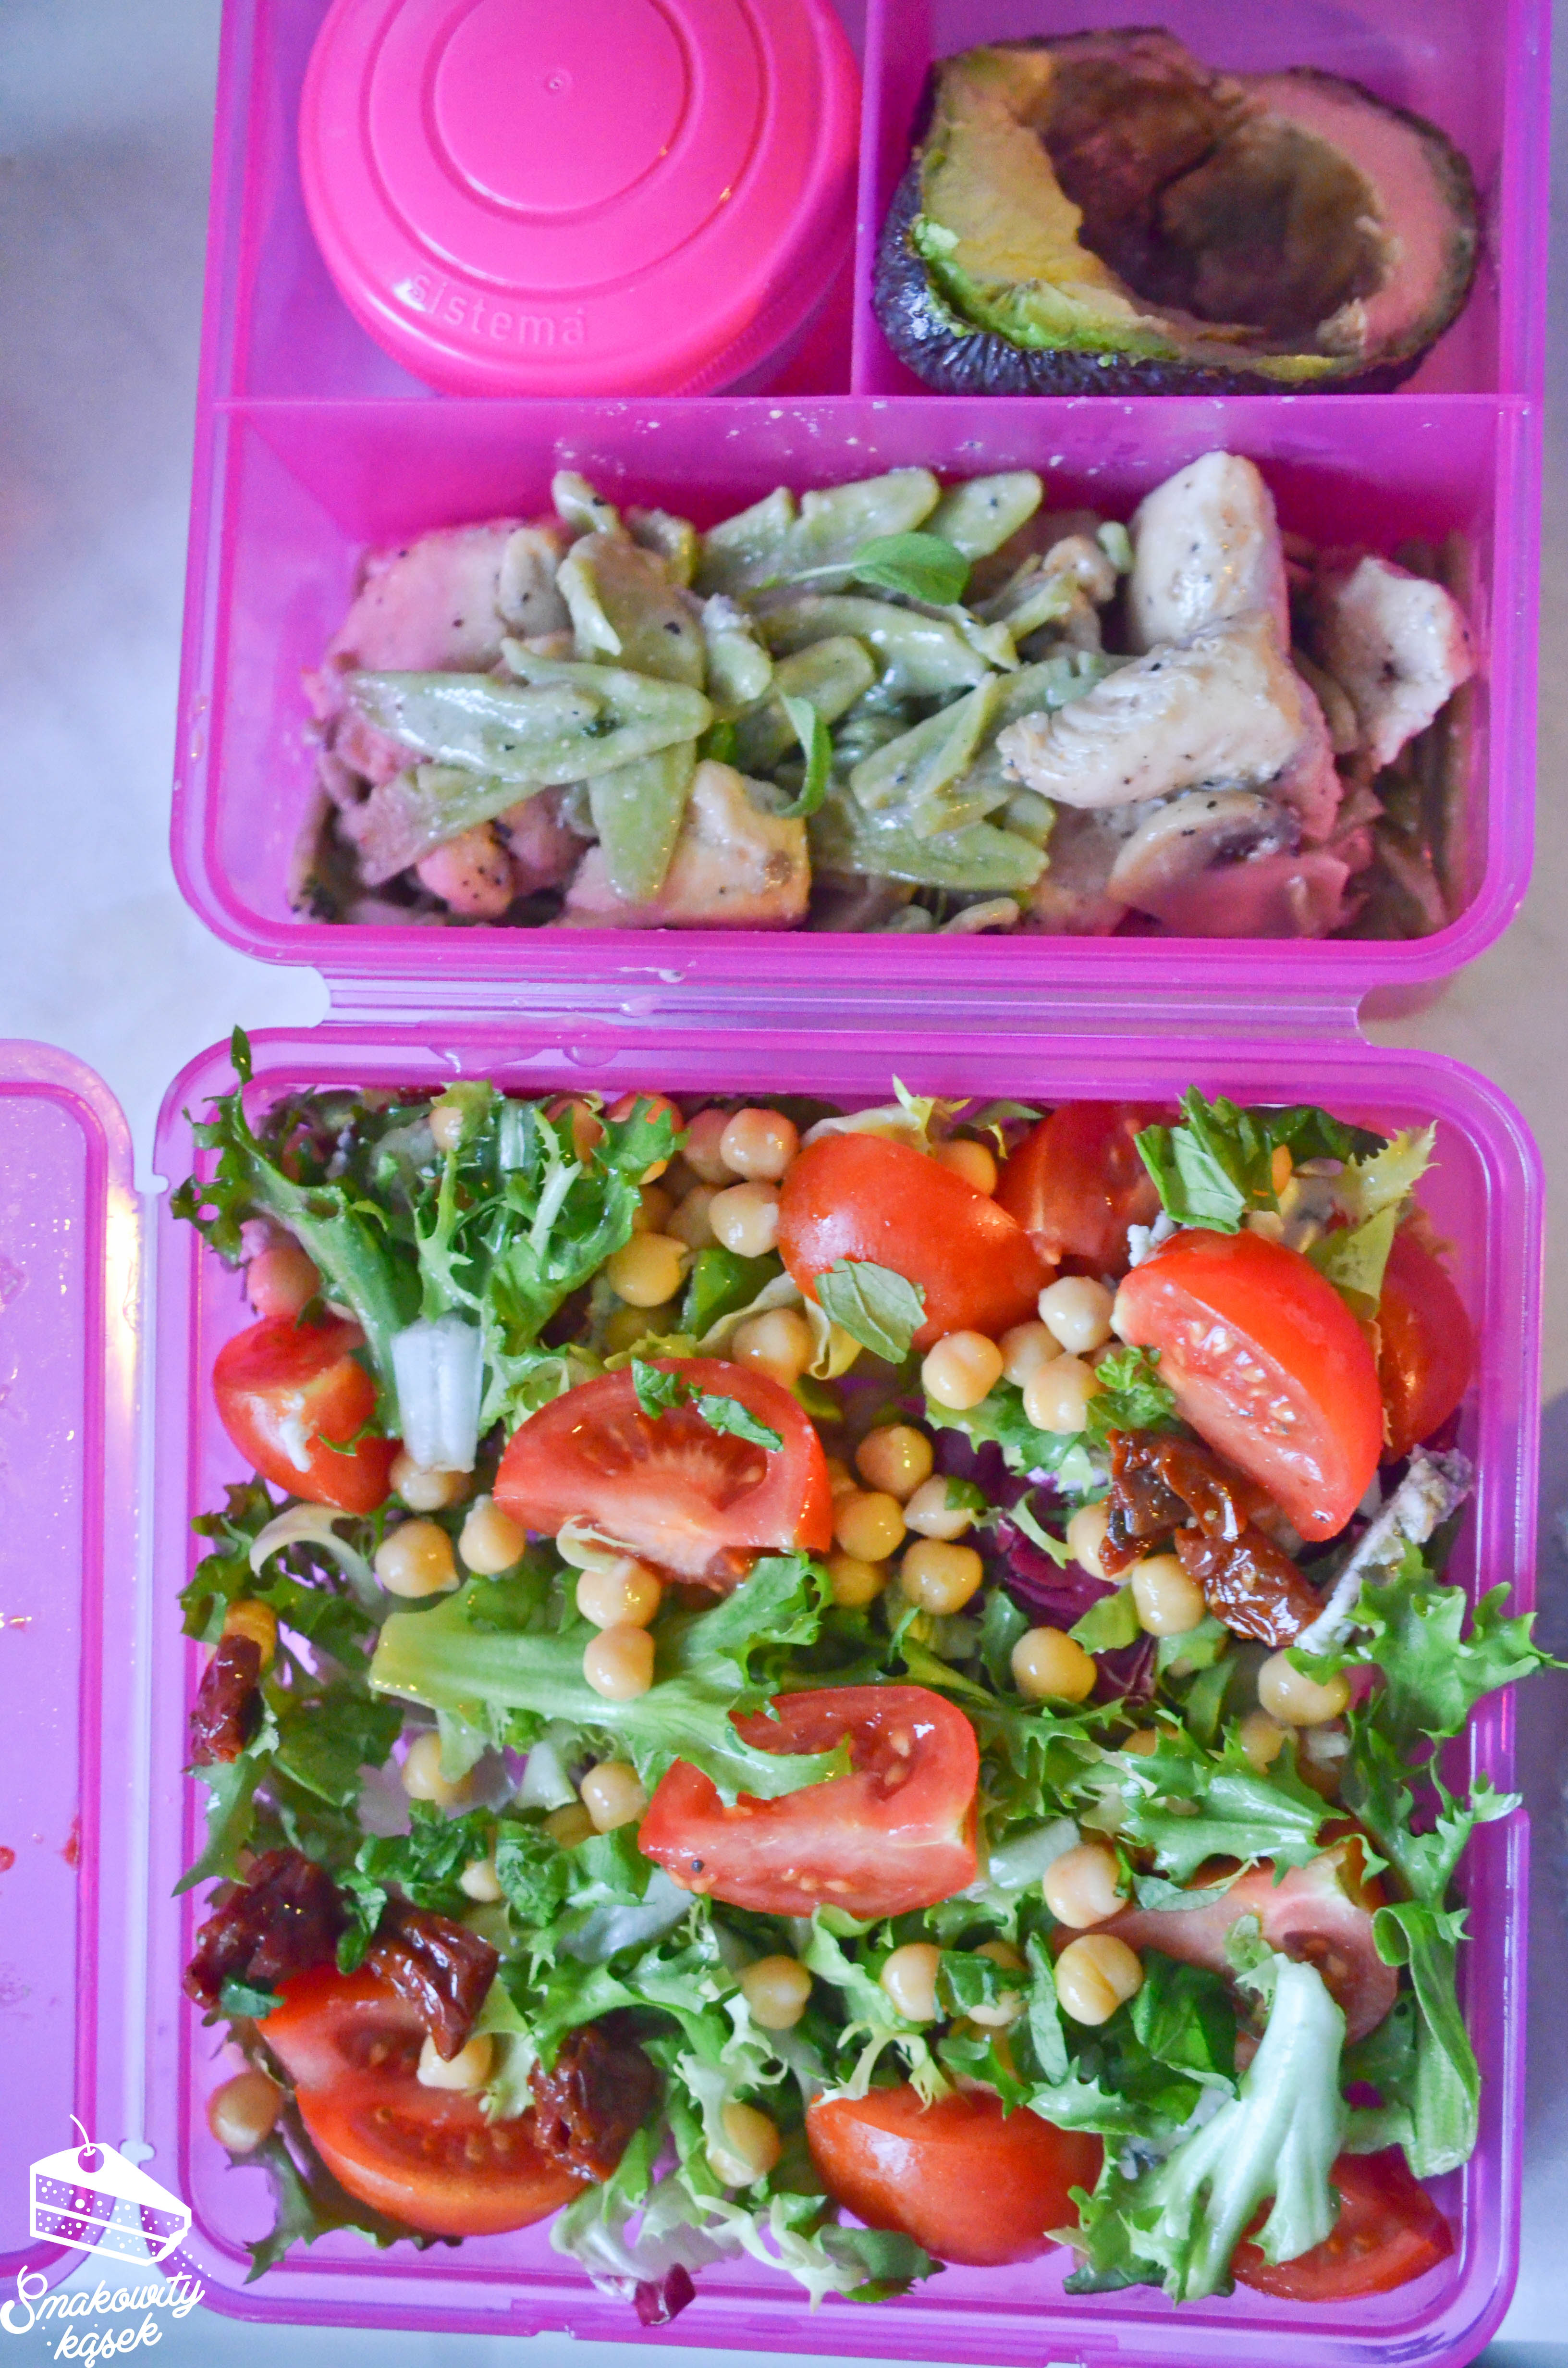 lunchbox (1 of 1)